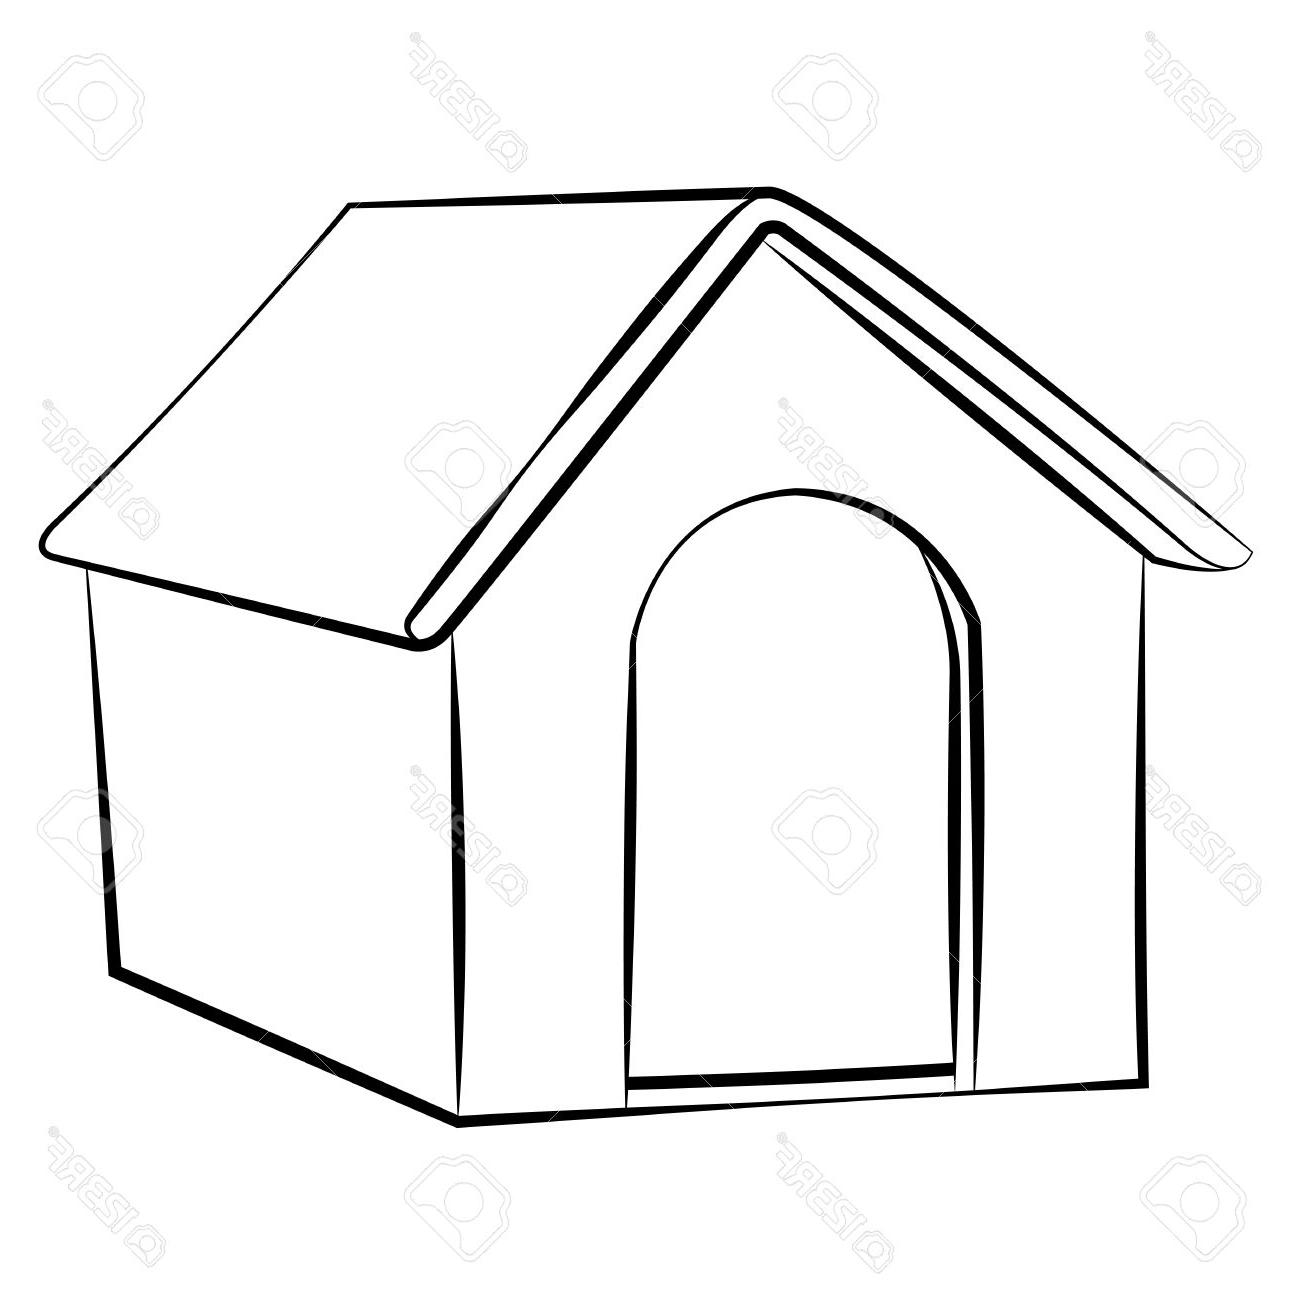 35  Beste animated house for Animated House Black And White  45hul